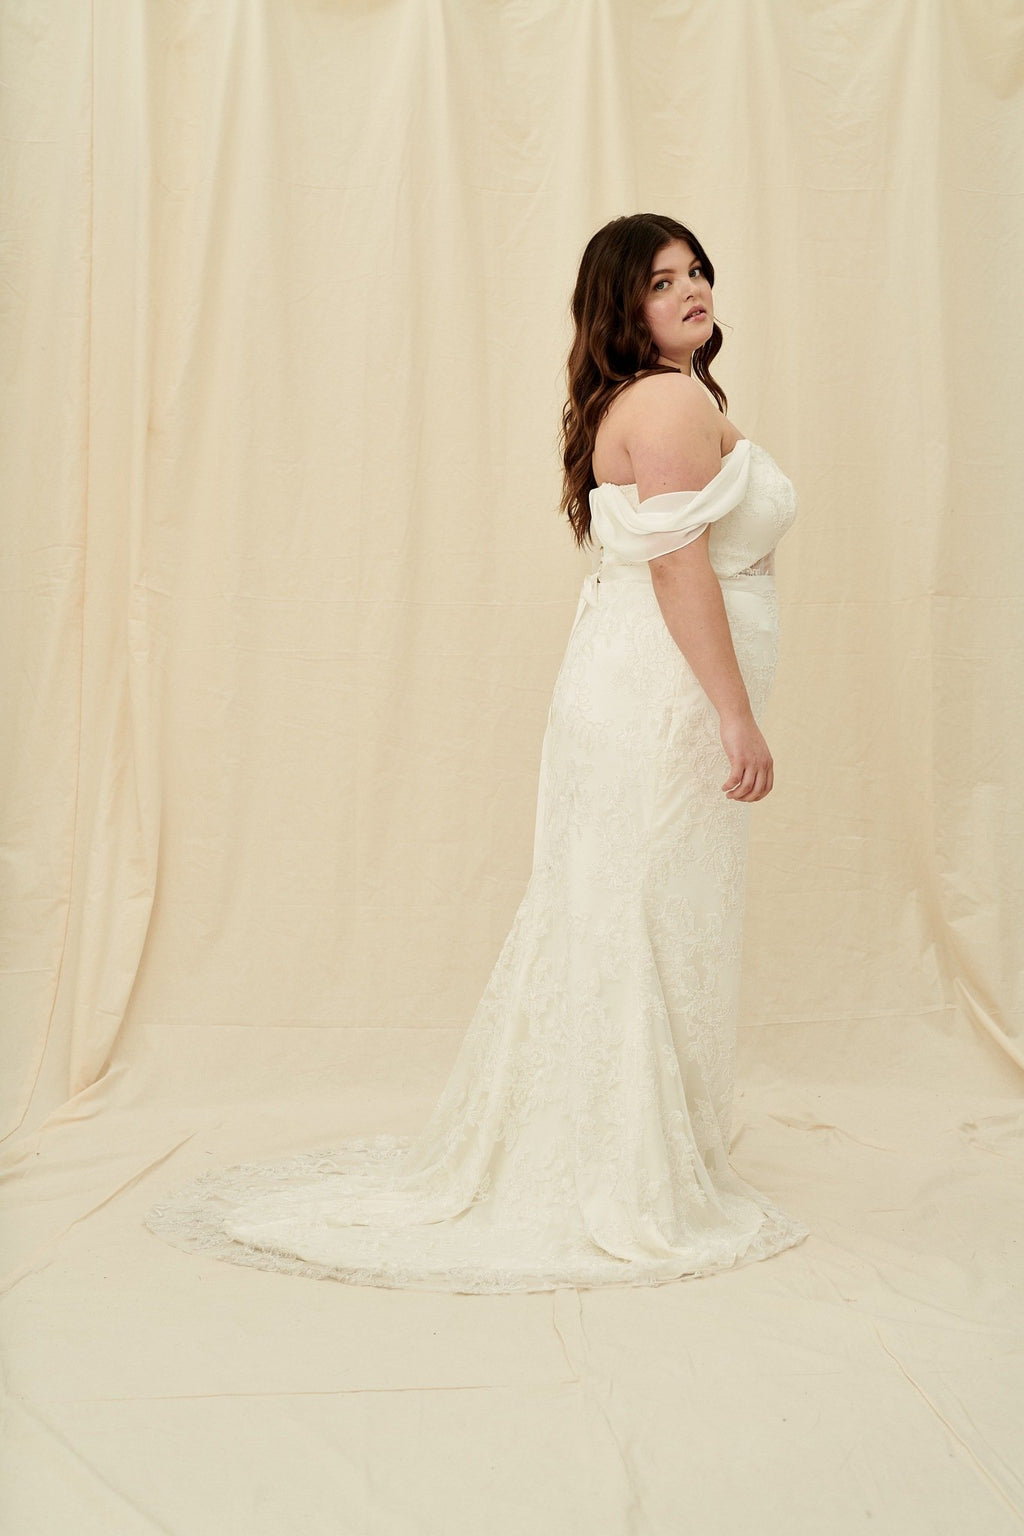 Plus size mermaid wedding dress with a beaded sweetheart neckline, corset back, and draped cap sleeves